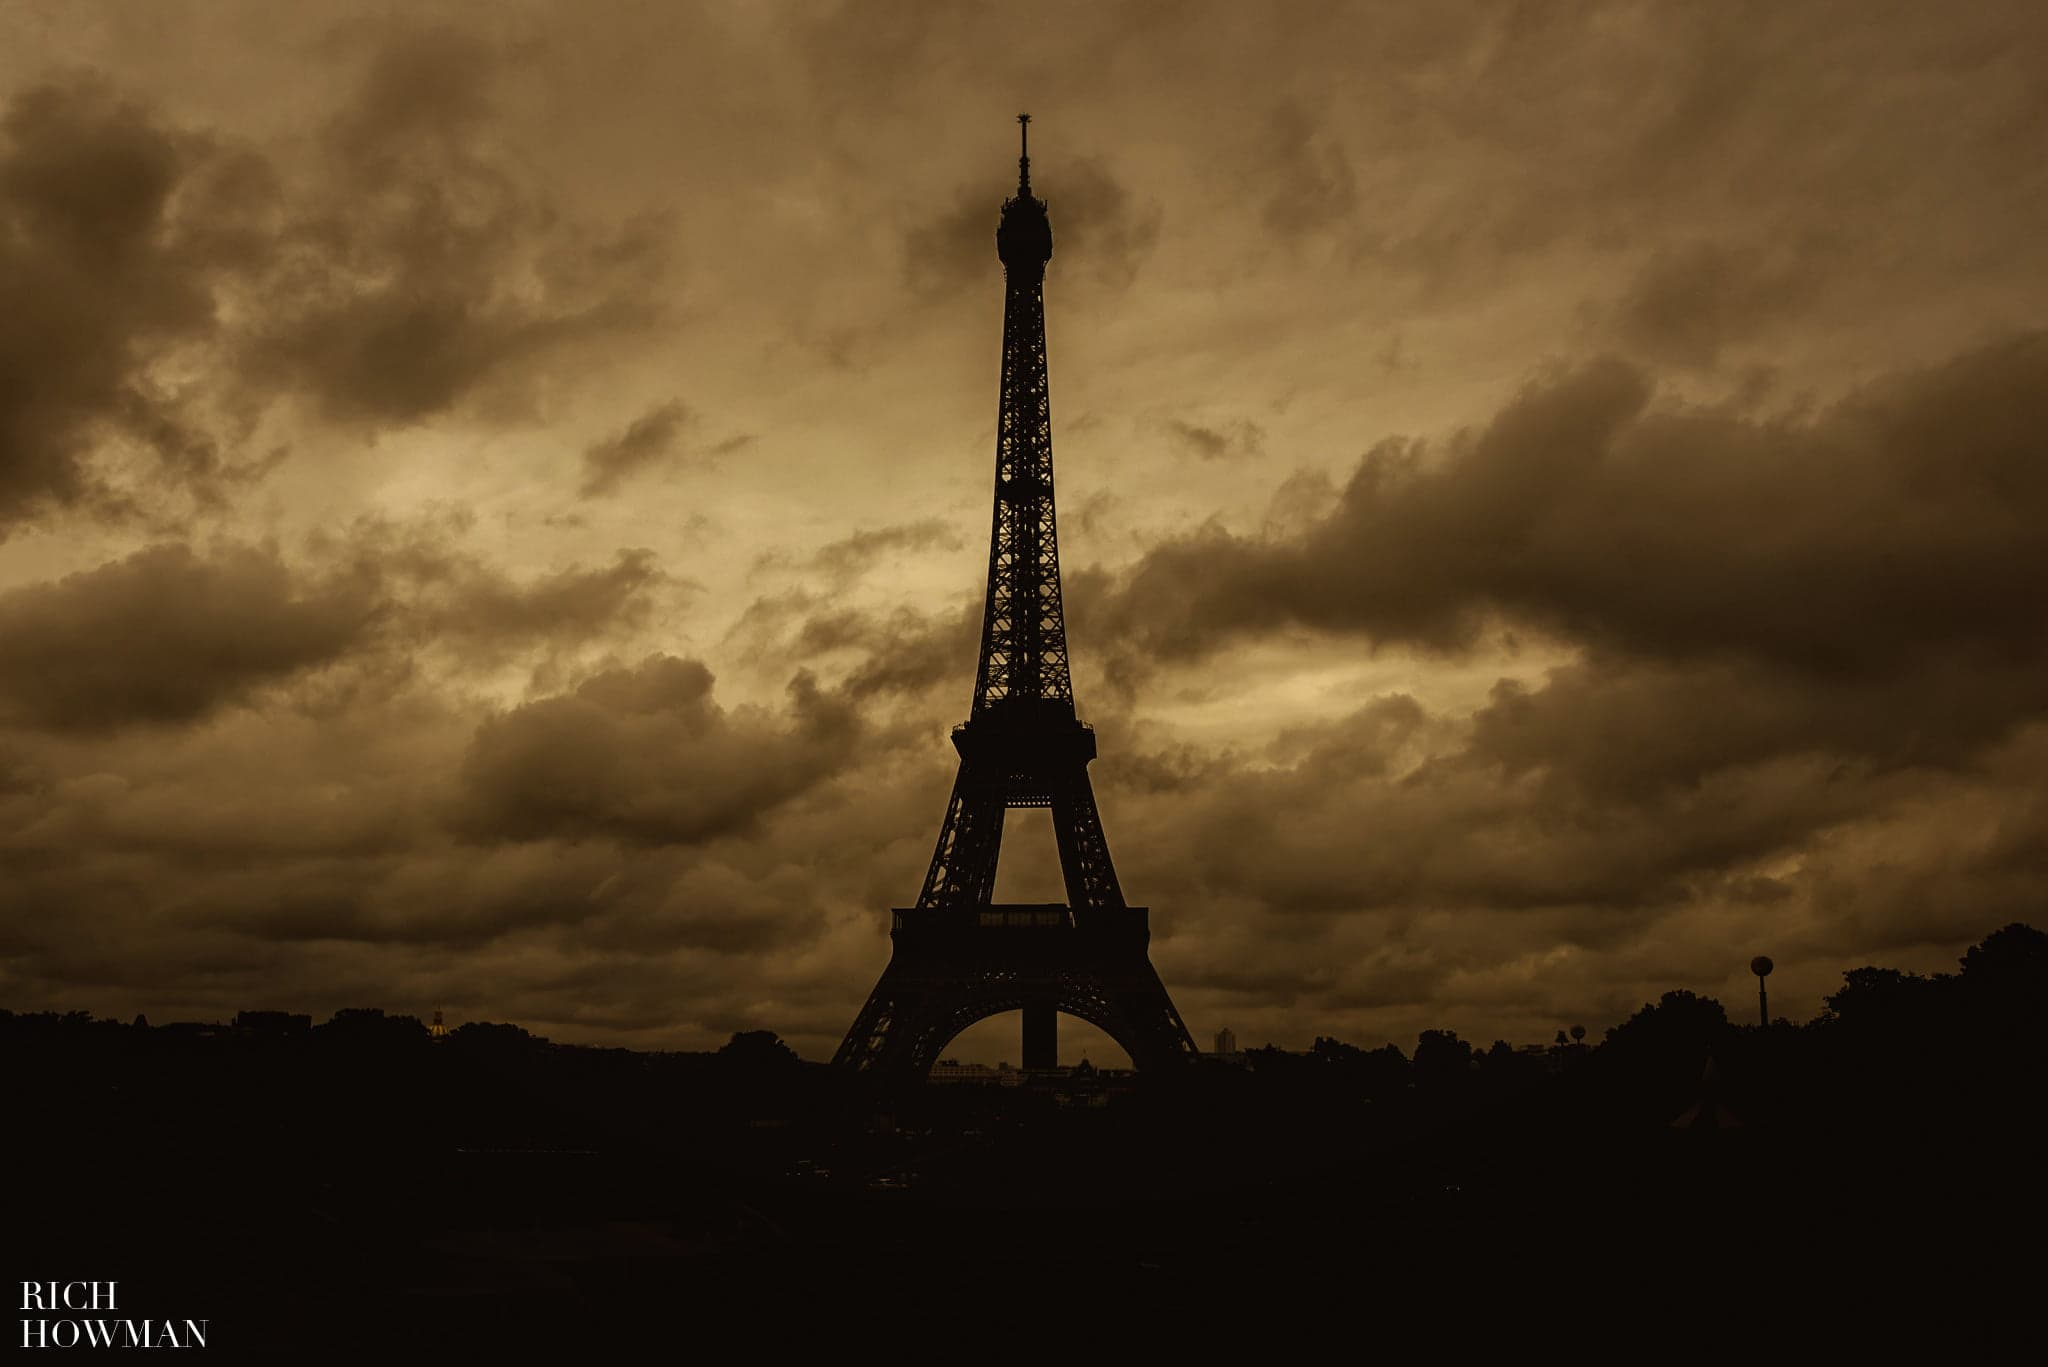 Eiffel tower in the clouds and rain